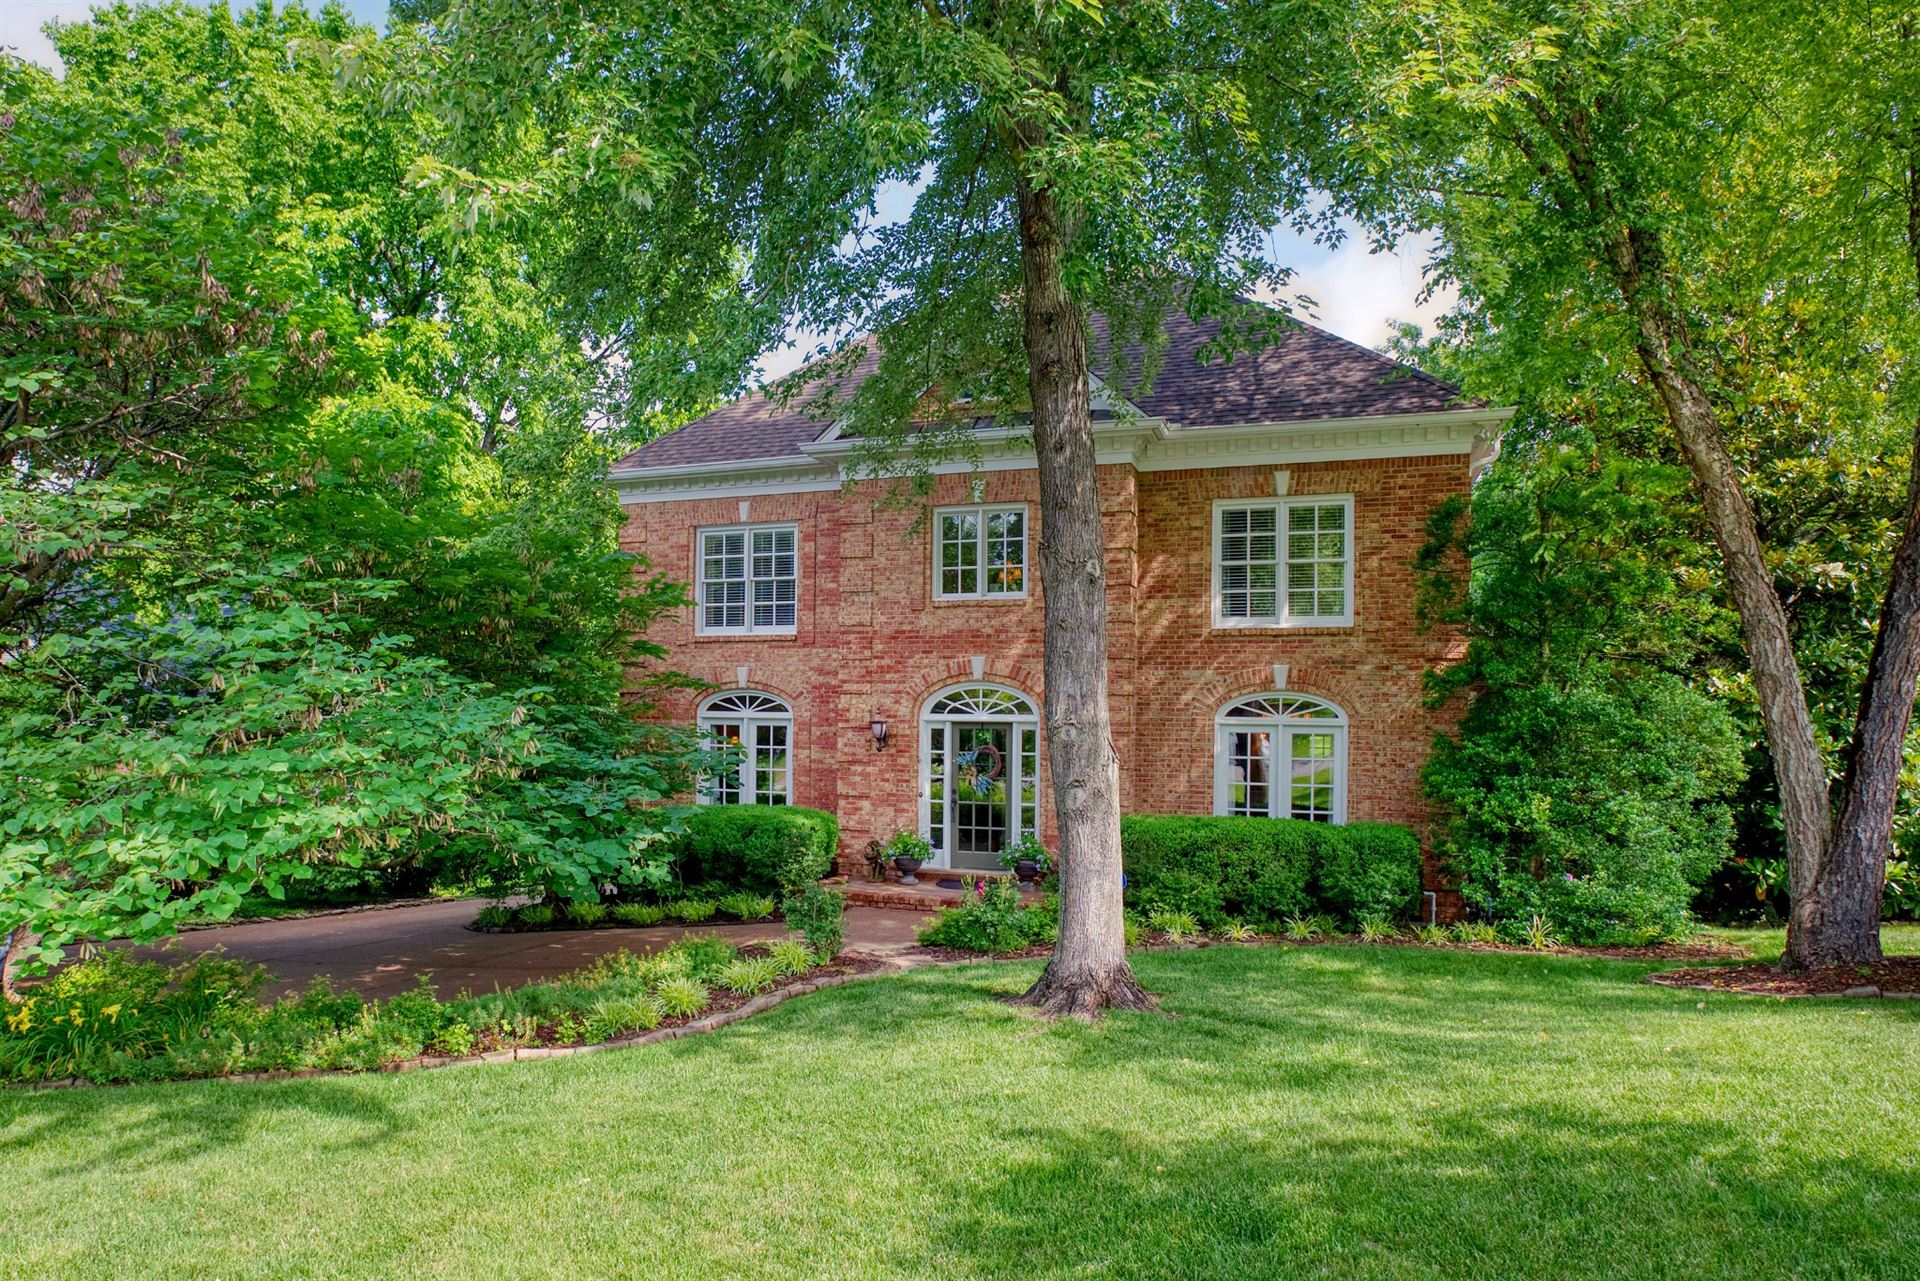 Photo of 9418 Highwood Hill Rd, Brentwood, TN 37027 (MLS # 2263080)